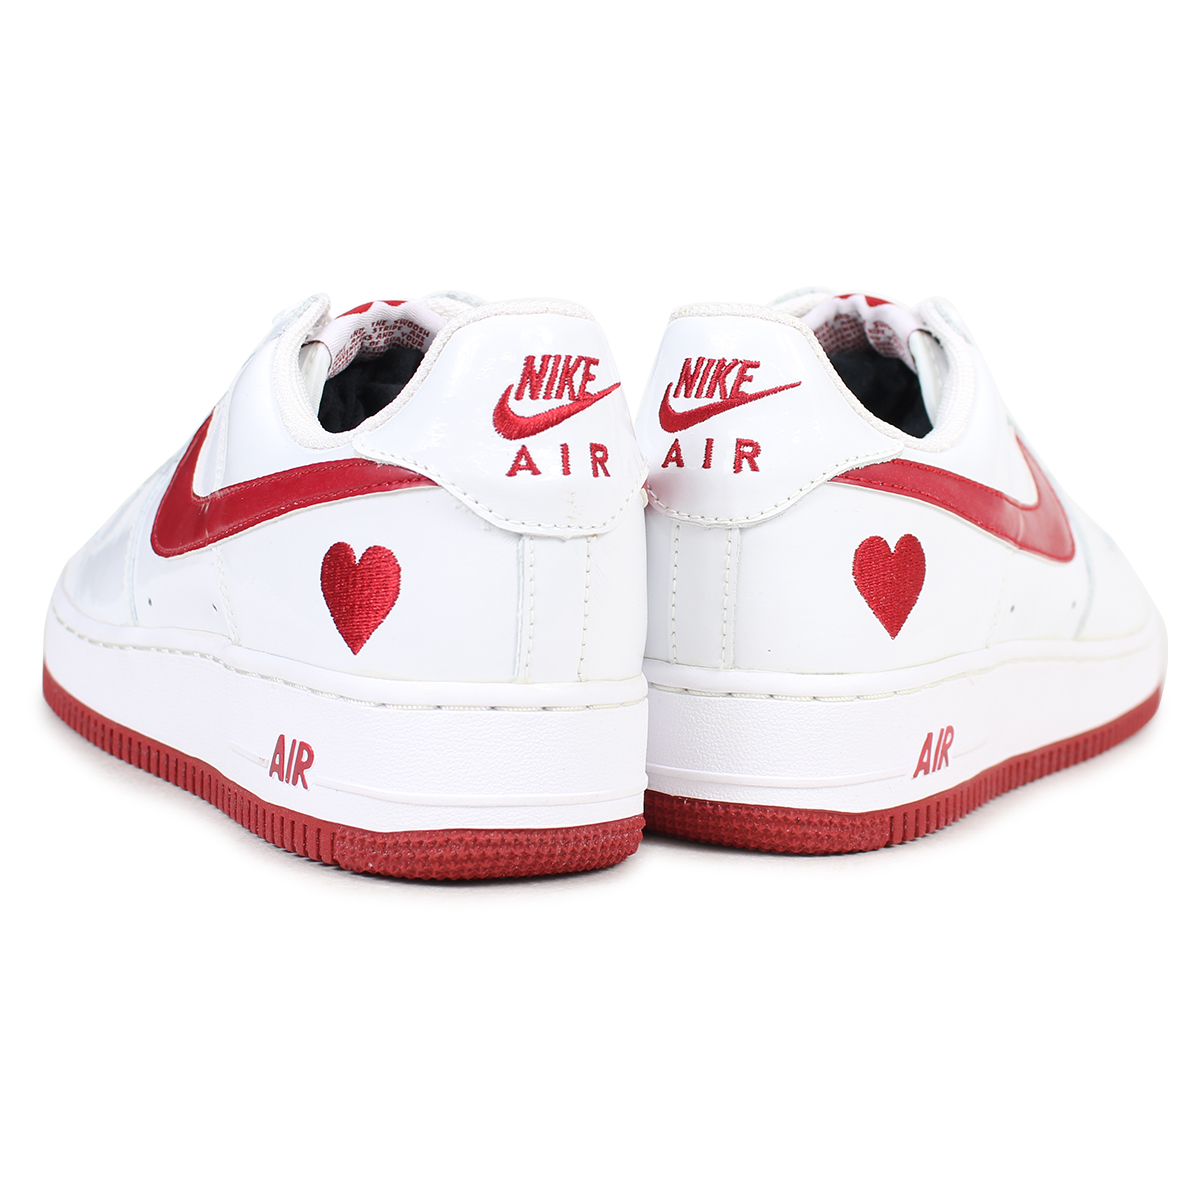 170c83a6e6 ... NIKE WMNS AIR FORCE 1 VALENTINE DAY 2004 Nike air force 1 sneakers men  white 307,109 ...